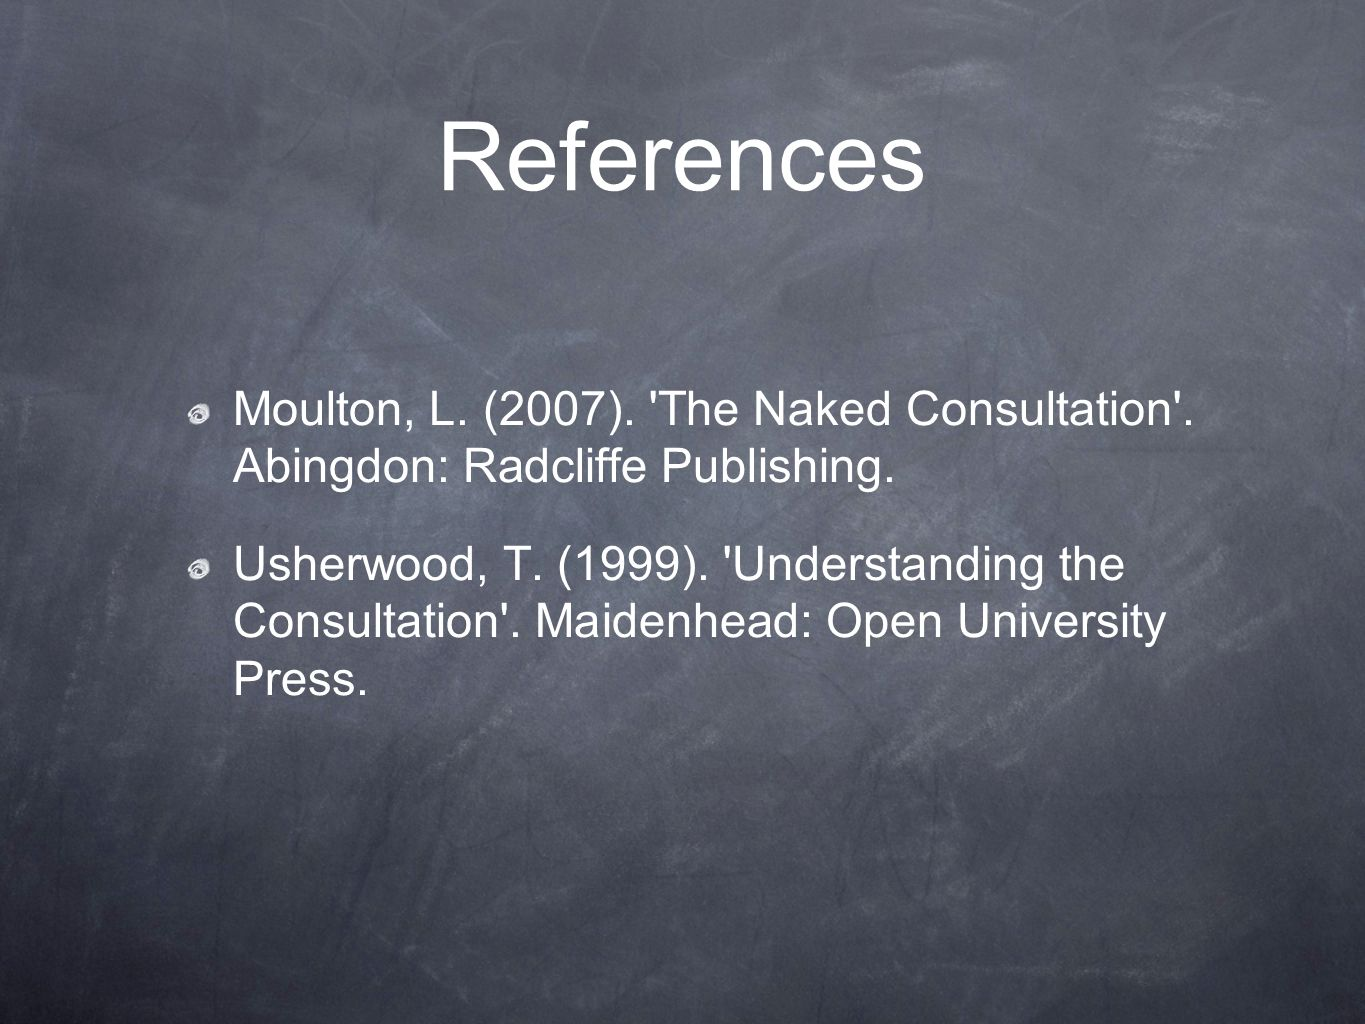 References Moulton, L. (2007). The Naked Consultation . Abingdon: Radcliffe Publishing.